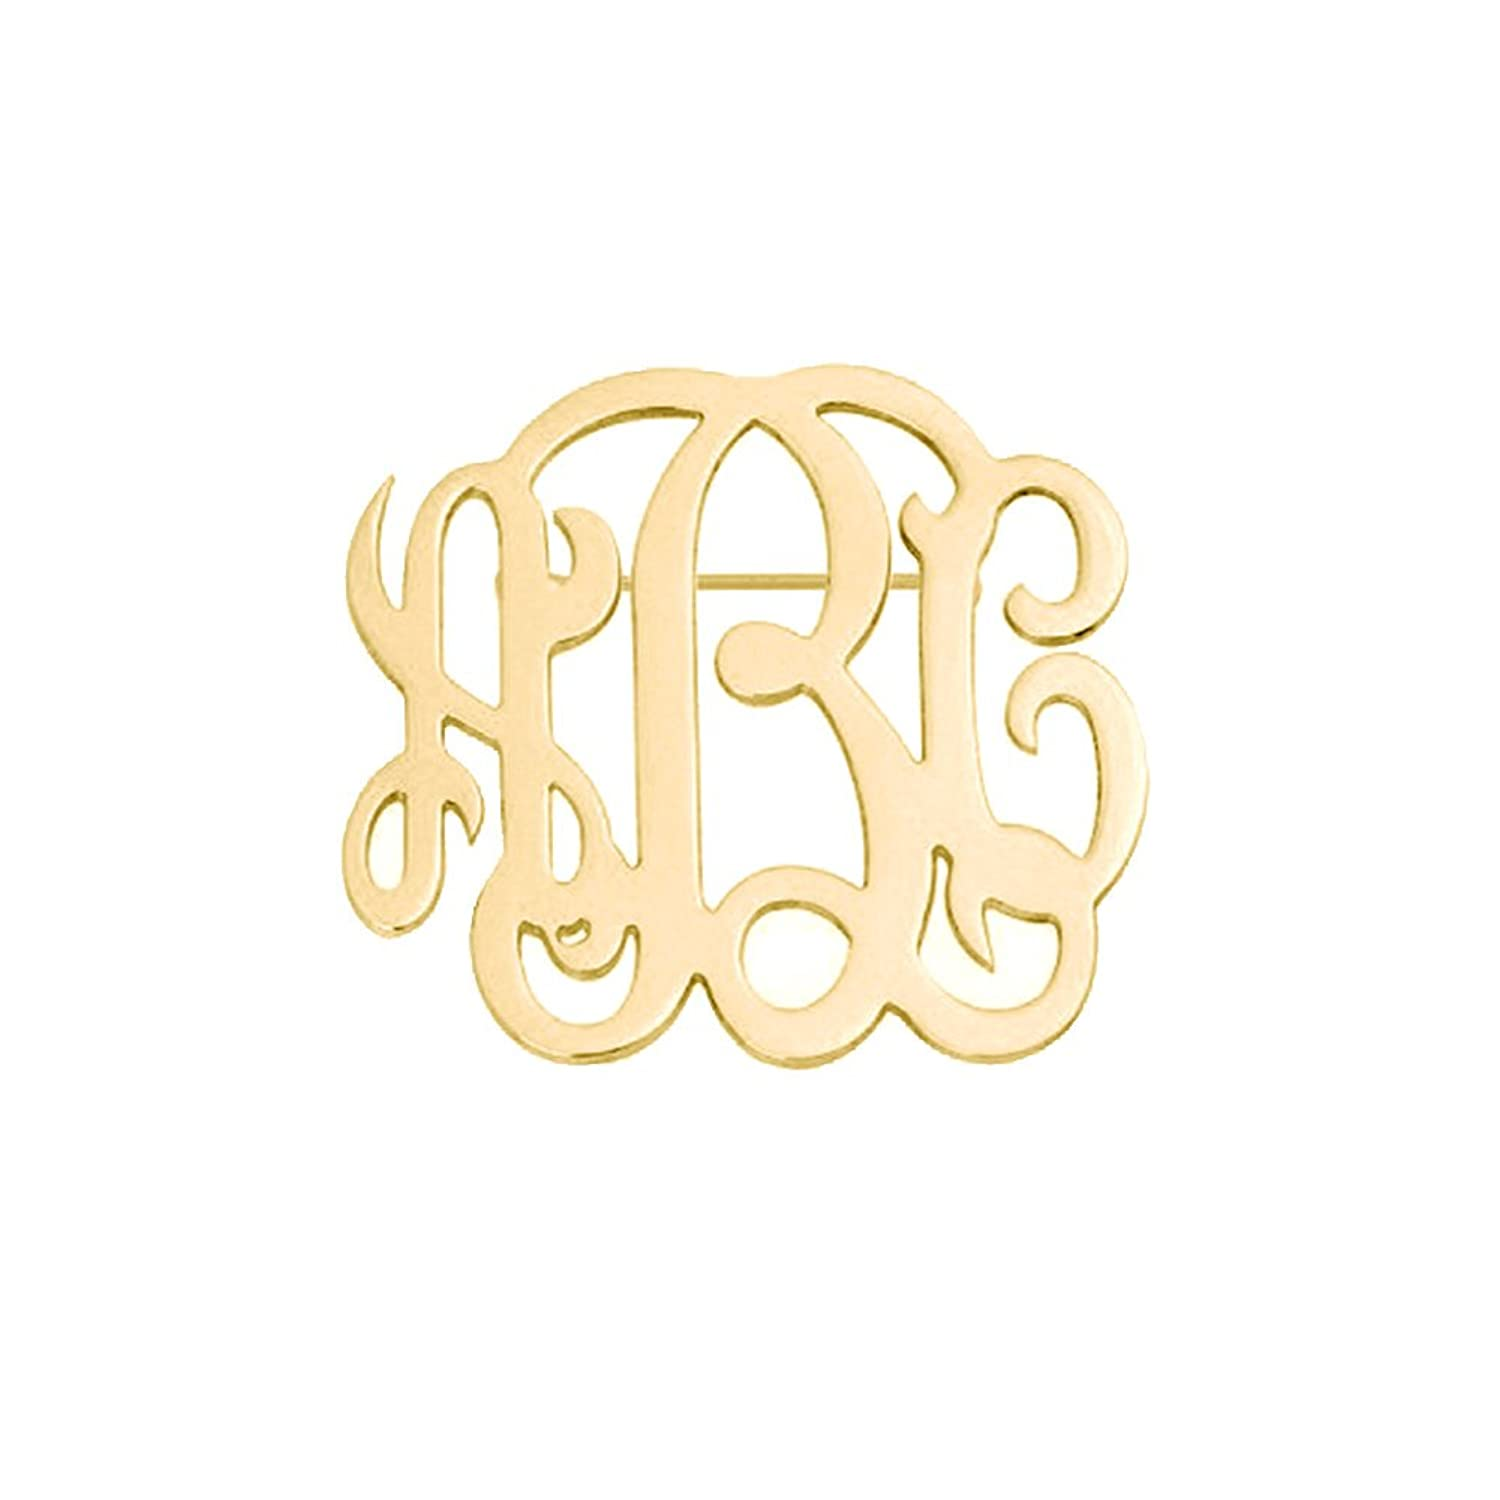 Ouslier Personalized 925 Sterling Silver Monogram Brooch Pin Custom Made with 3 Initials